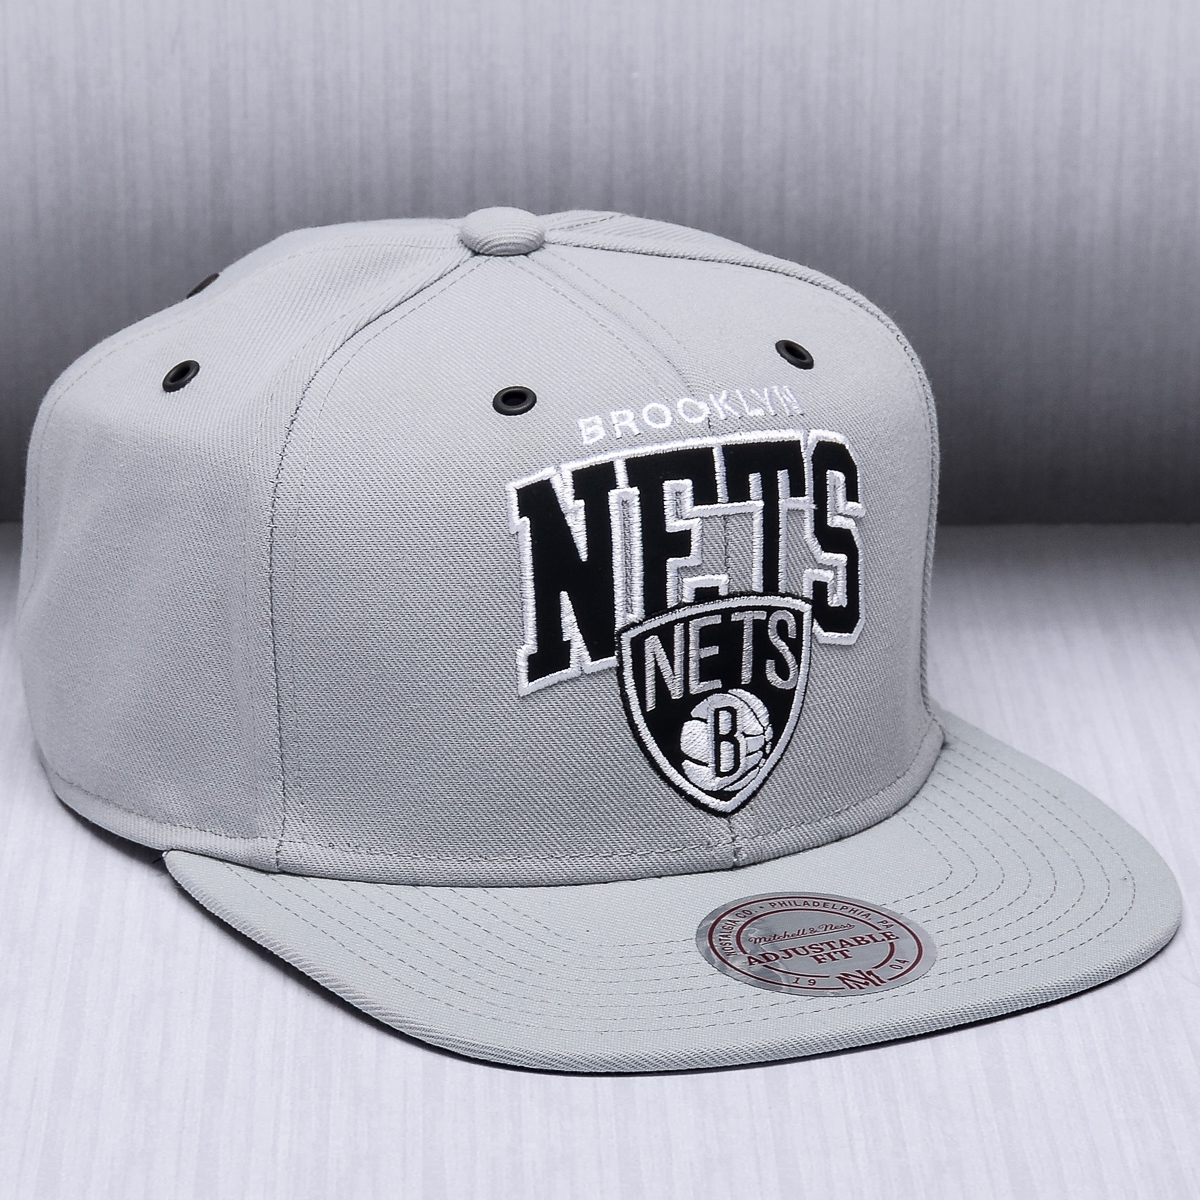 pretty nice 46226 c96e9 Mitchell   Ness NBA Brooklyn Nets Black And White Arch Snapback Cap - NBA  Shop Brooklyn Nets Merchandise - Superfanas.lt